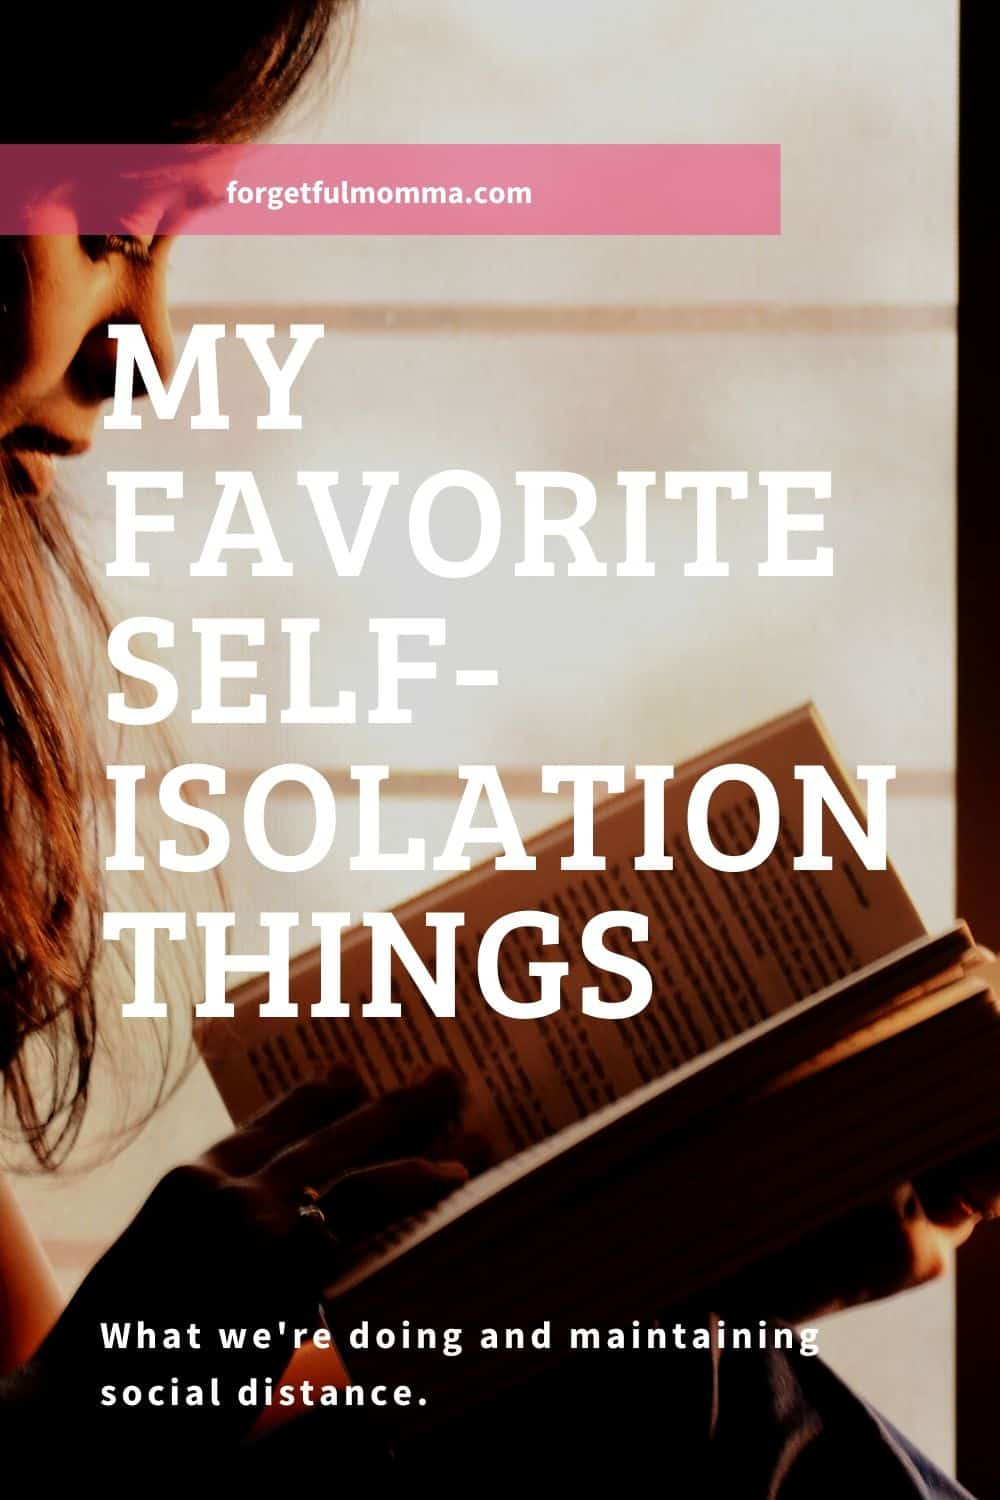 My Favorite Self-Isolation Things